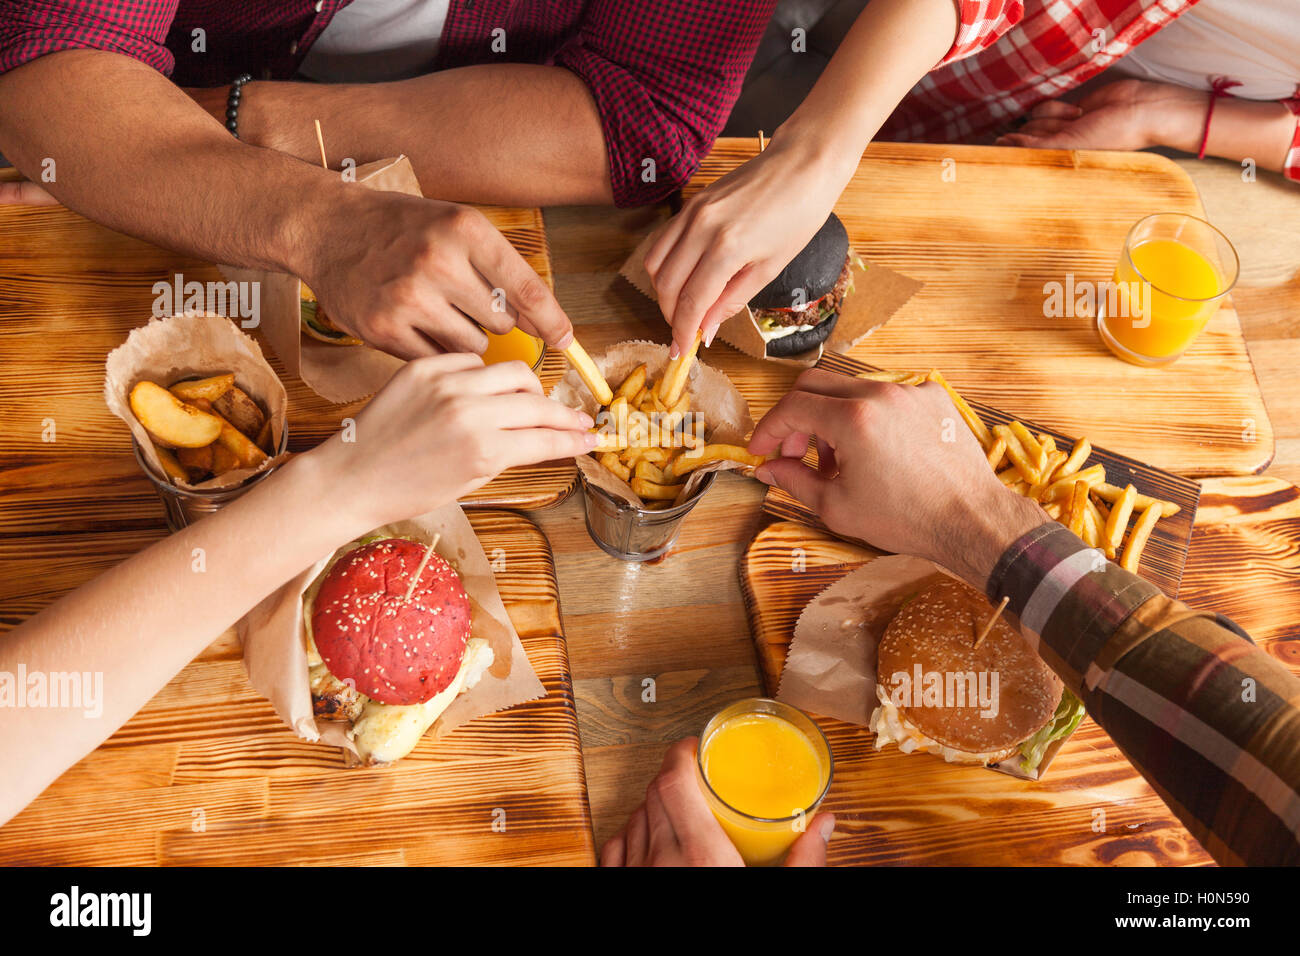 People Group Friends Hands Eating Fast Food Burgers Potato Drinking ...